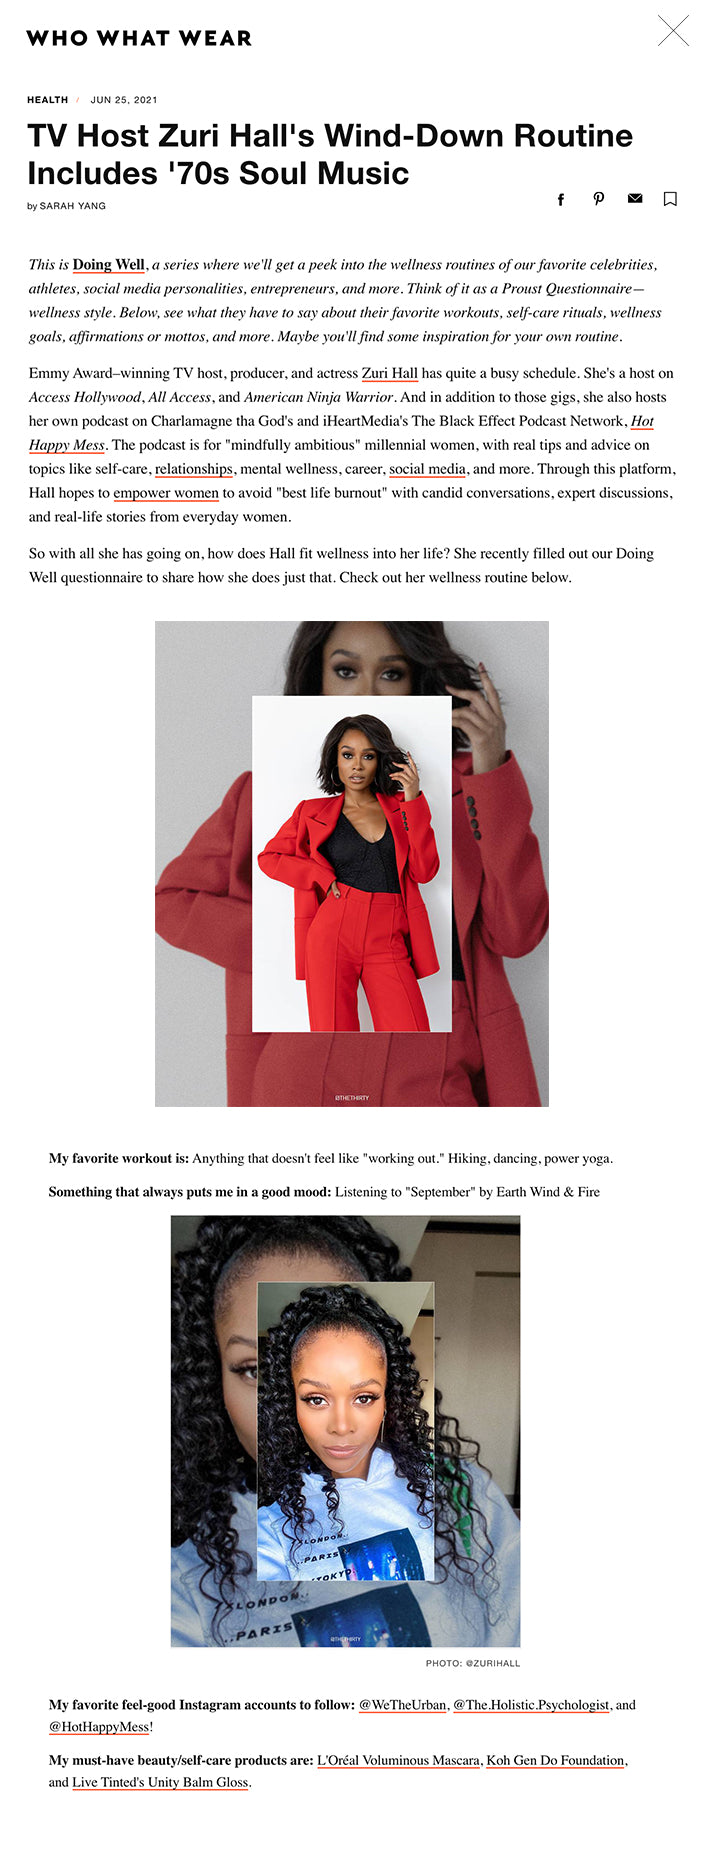 """HEALTH  JUN 25, 2021 TV Host Zuri Hall's Wind-Down Routine Includes '70s Soul Music by SARAH YANG facebook pinterest email Favorite  Take a Look at Zuri Hall's Wellness Routine PHOTO: @ZURIHALL This is Doing Well, a series where we'll get a peek into the wellness routines of our favorite celebrities, athletes, social media personalities, entrepreneurs, and more. Think of it as a Proust Questionnaire—wellness style. Below, see what they have to say about their favorite workouts, self-care rituals, wellness goals, affirmations or mottos, and more. Maybe you'll find some inspiration for your own routine.  Emmy Award–winning TV host, producer, and actress Zuri Hall has quite a busy schedule. She's a host on Access Hollywood, All Access, and American Ninja Warrior. And in addition to those gigs, she also hosts her own podcast on Charlamagne tha God's and iHeartMedia's The Black Effect Podcast Network, Hot Happy Mess. The podcast is for """"mindfully ambitious"""" millennial women, with real tips and advice on topics like self-care, relationships, mental wellness, career, social media, and more. Through this platform, Hall hopes to empower women to avoid """"best life burnout"""" with candid conversations, expert discussions, and real-life stories from everyday women.  So with all she has going on, how does Hall fit wellness into her life? She recently filled out our Doing Well questionnaire to share how she does just that. Check out her wellness routine below.  Take a Look at Zuri Hall's Wellness Routine PHOTO: @ZURIHALL The first thing I do when I wake up is: Hit the snooze button three times!  My go-to meal before work is: Honestly, not much. I'm a big lunch and dinner person. But most mornings, I'll try to down a High Protein Boost and a breakfast bar and maybe some scrambled eggs if I have the time to whip them up (which is rare).  ADVERTISING   Take a Look at Zuri Hall's Wellness Routine PHOTO: @ZURIHALL My favorite workout is: Anything that doesn't feel like """"working out."""" Hik"""